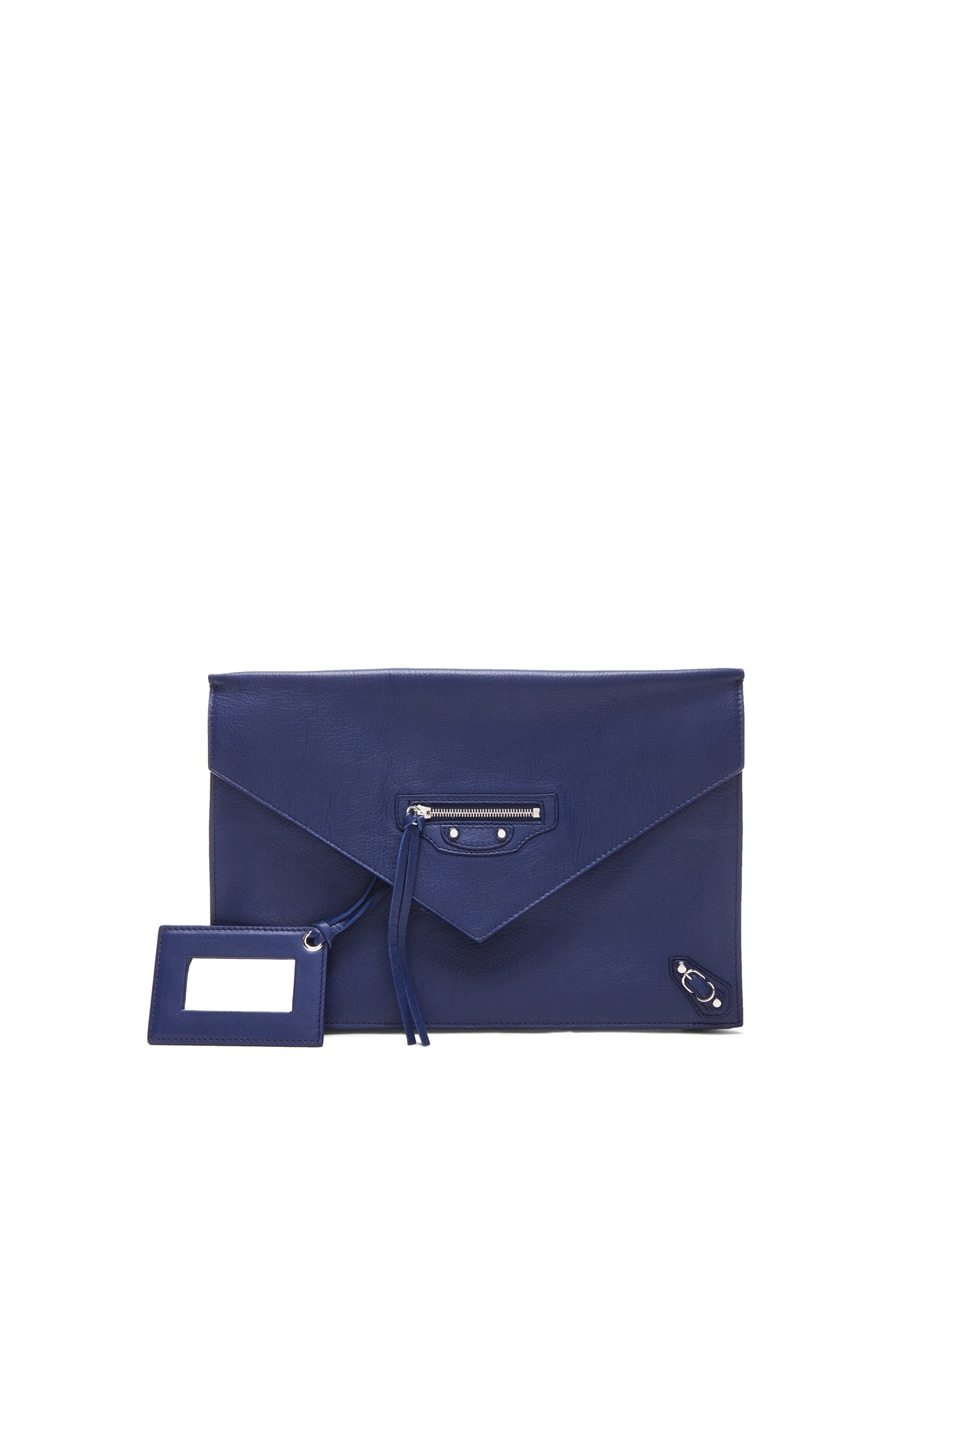 Image 1 of Balenciaga Papier Zip Around Sight Clutch in Officer Blue